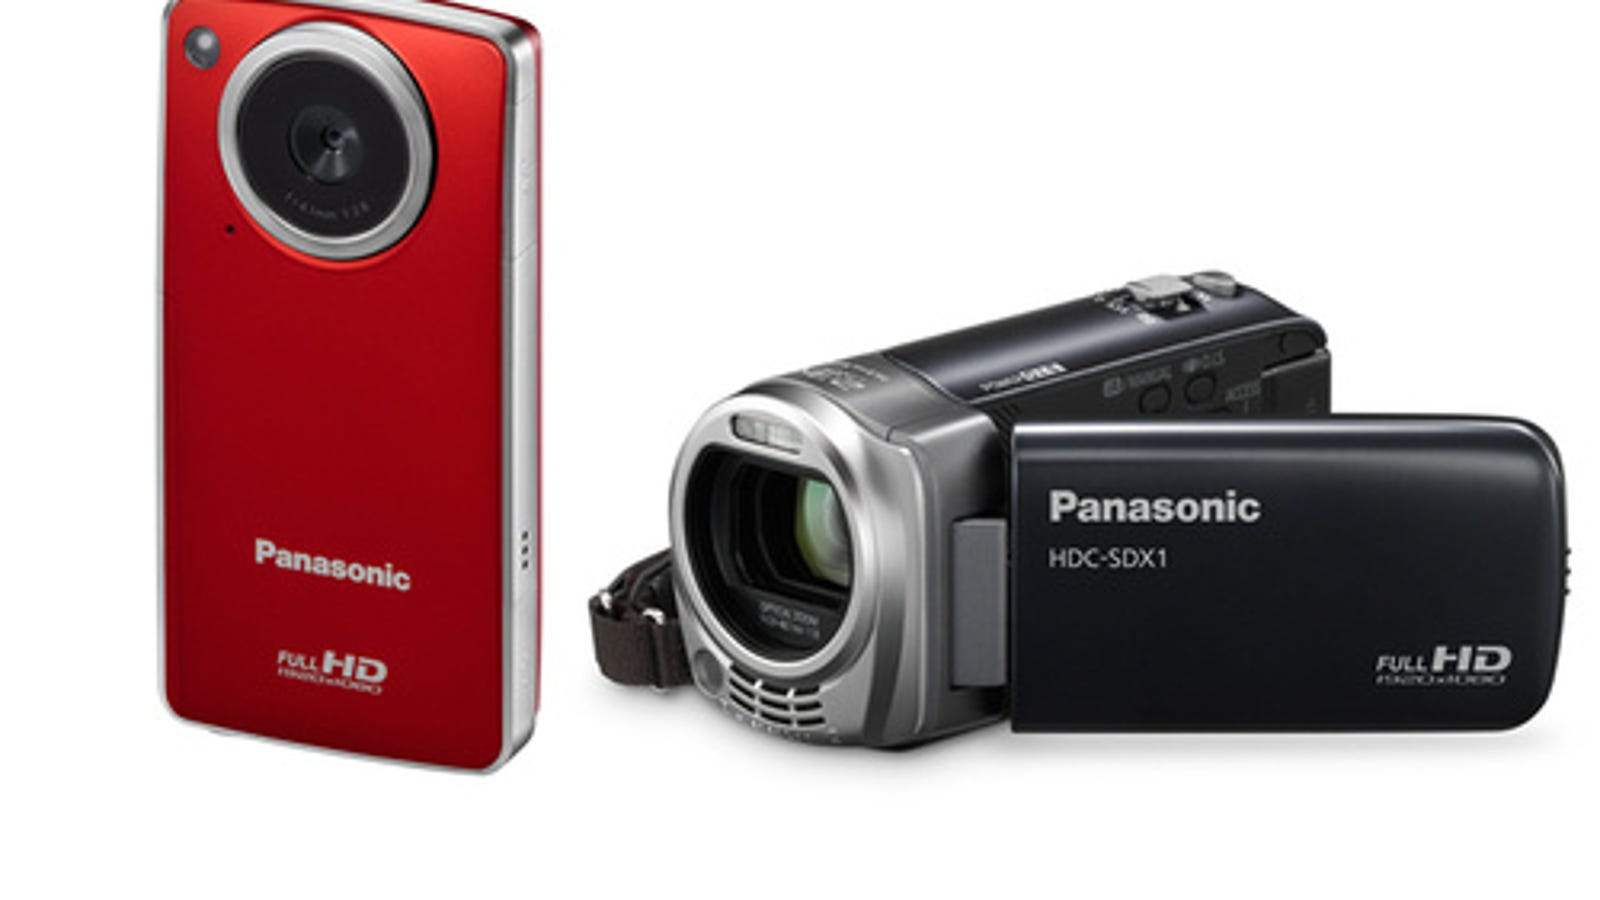 Panasonic's HDC-SDX1 and HM-TA1 HD Camcorders Double as Web Cams